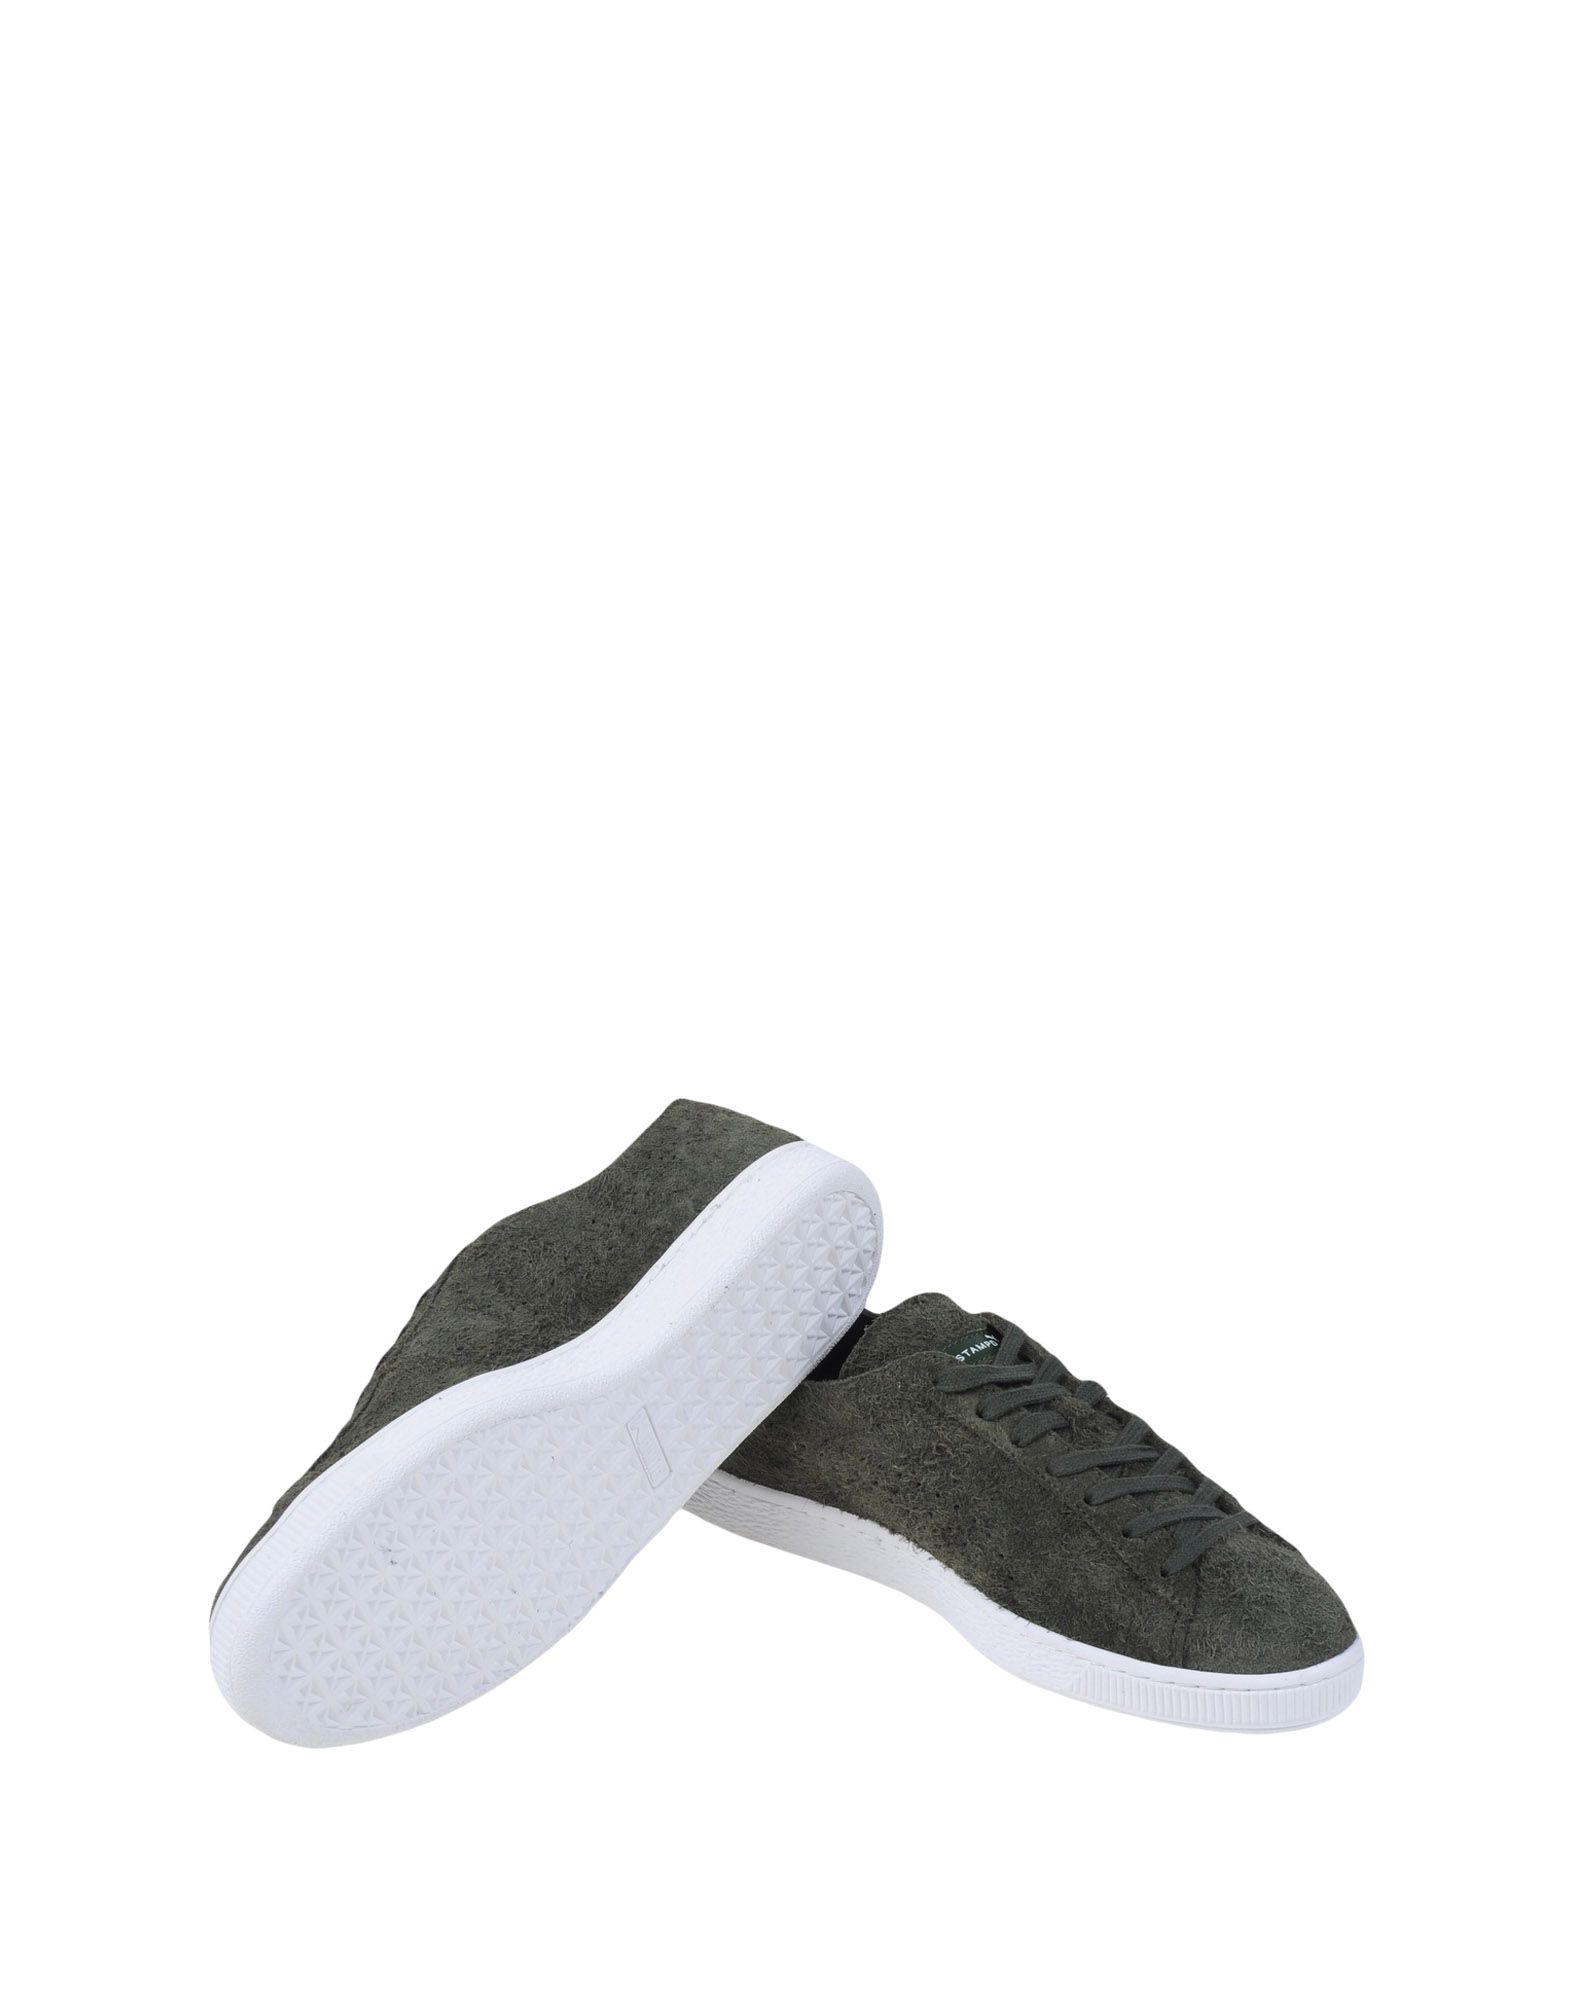 Sneakers Stampd X Puma States - Homme - Sneakers Stampd X Puma sur